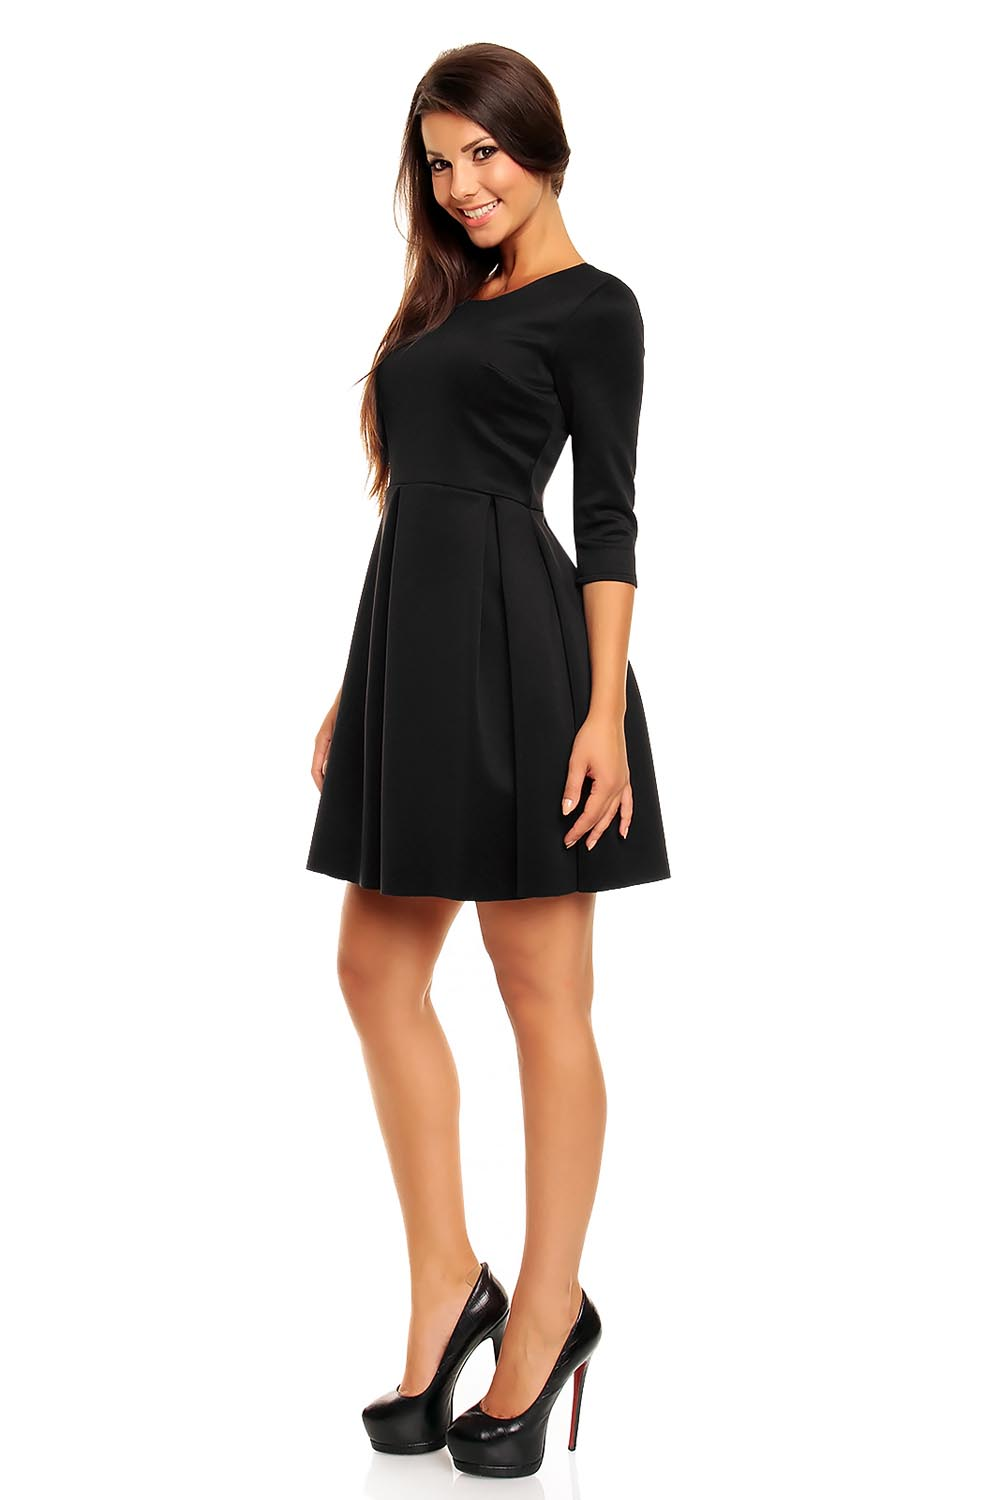 Black modern cut skater knee length dress